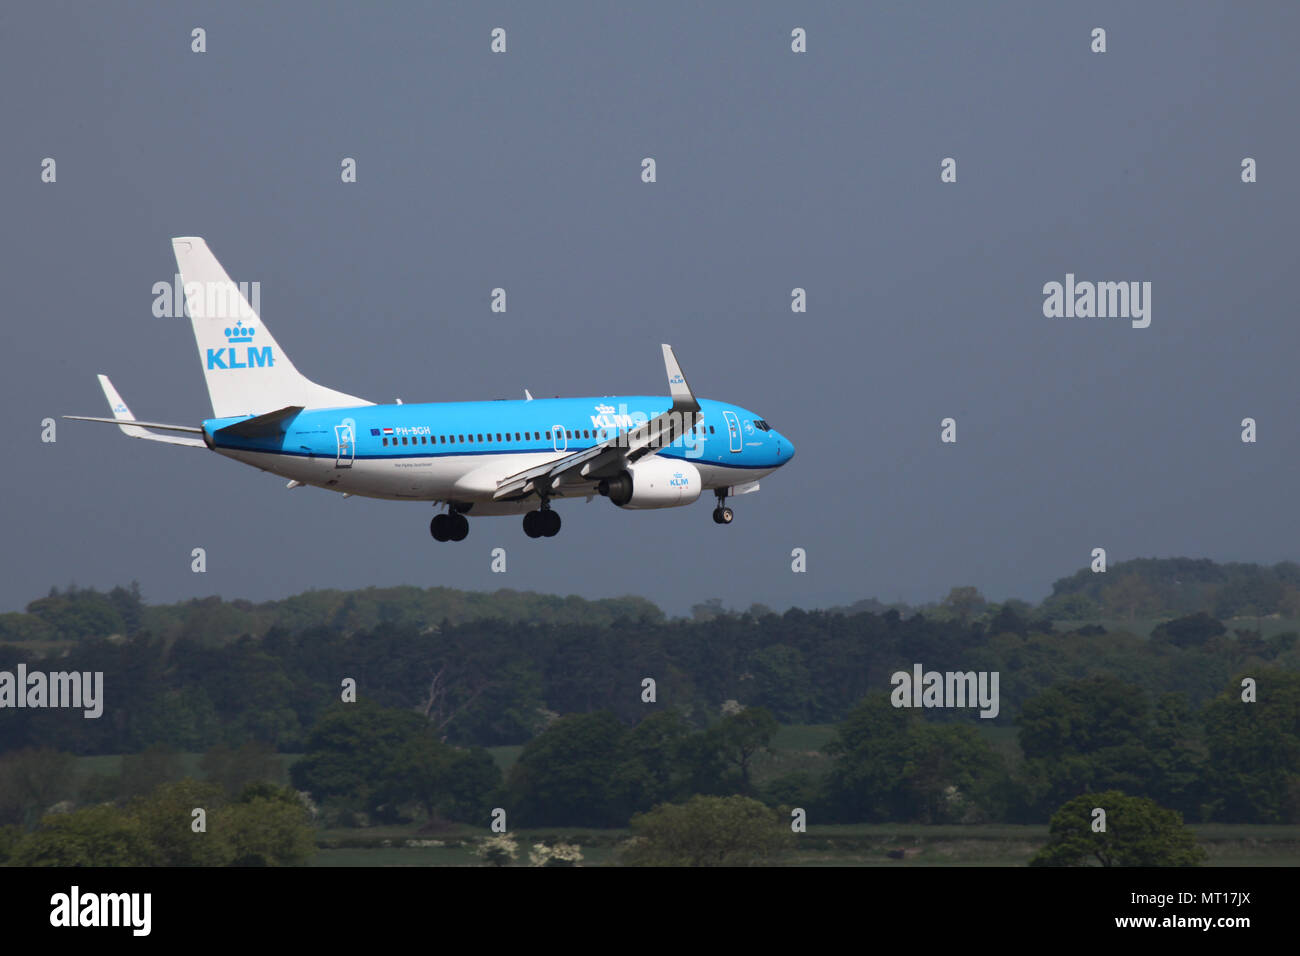 A KLM jet skims the treeline as it makes its final approach into Edinburgh airport - Stock Image